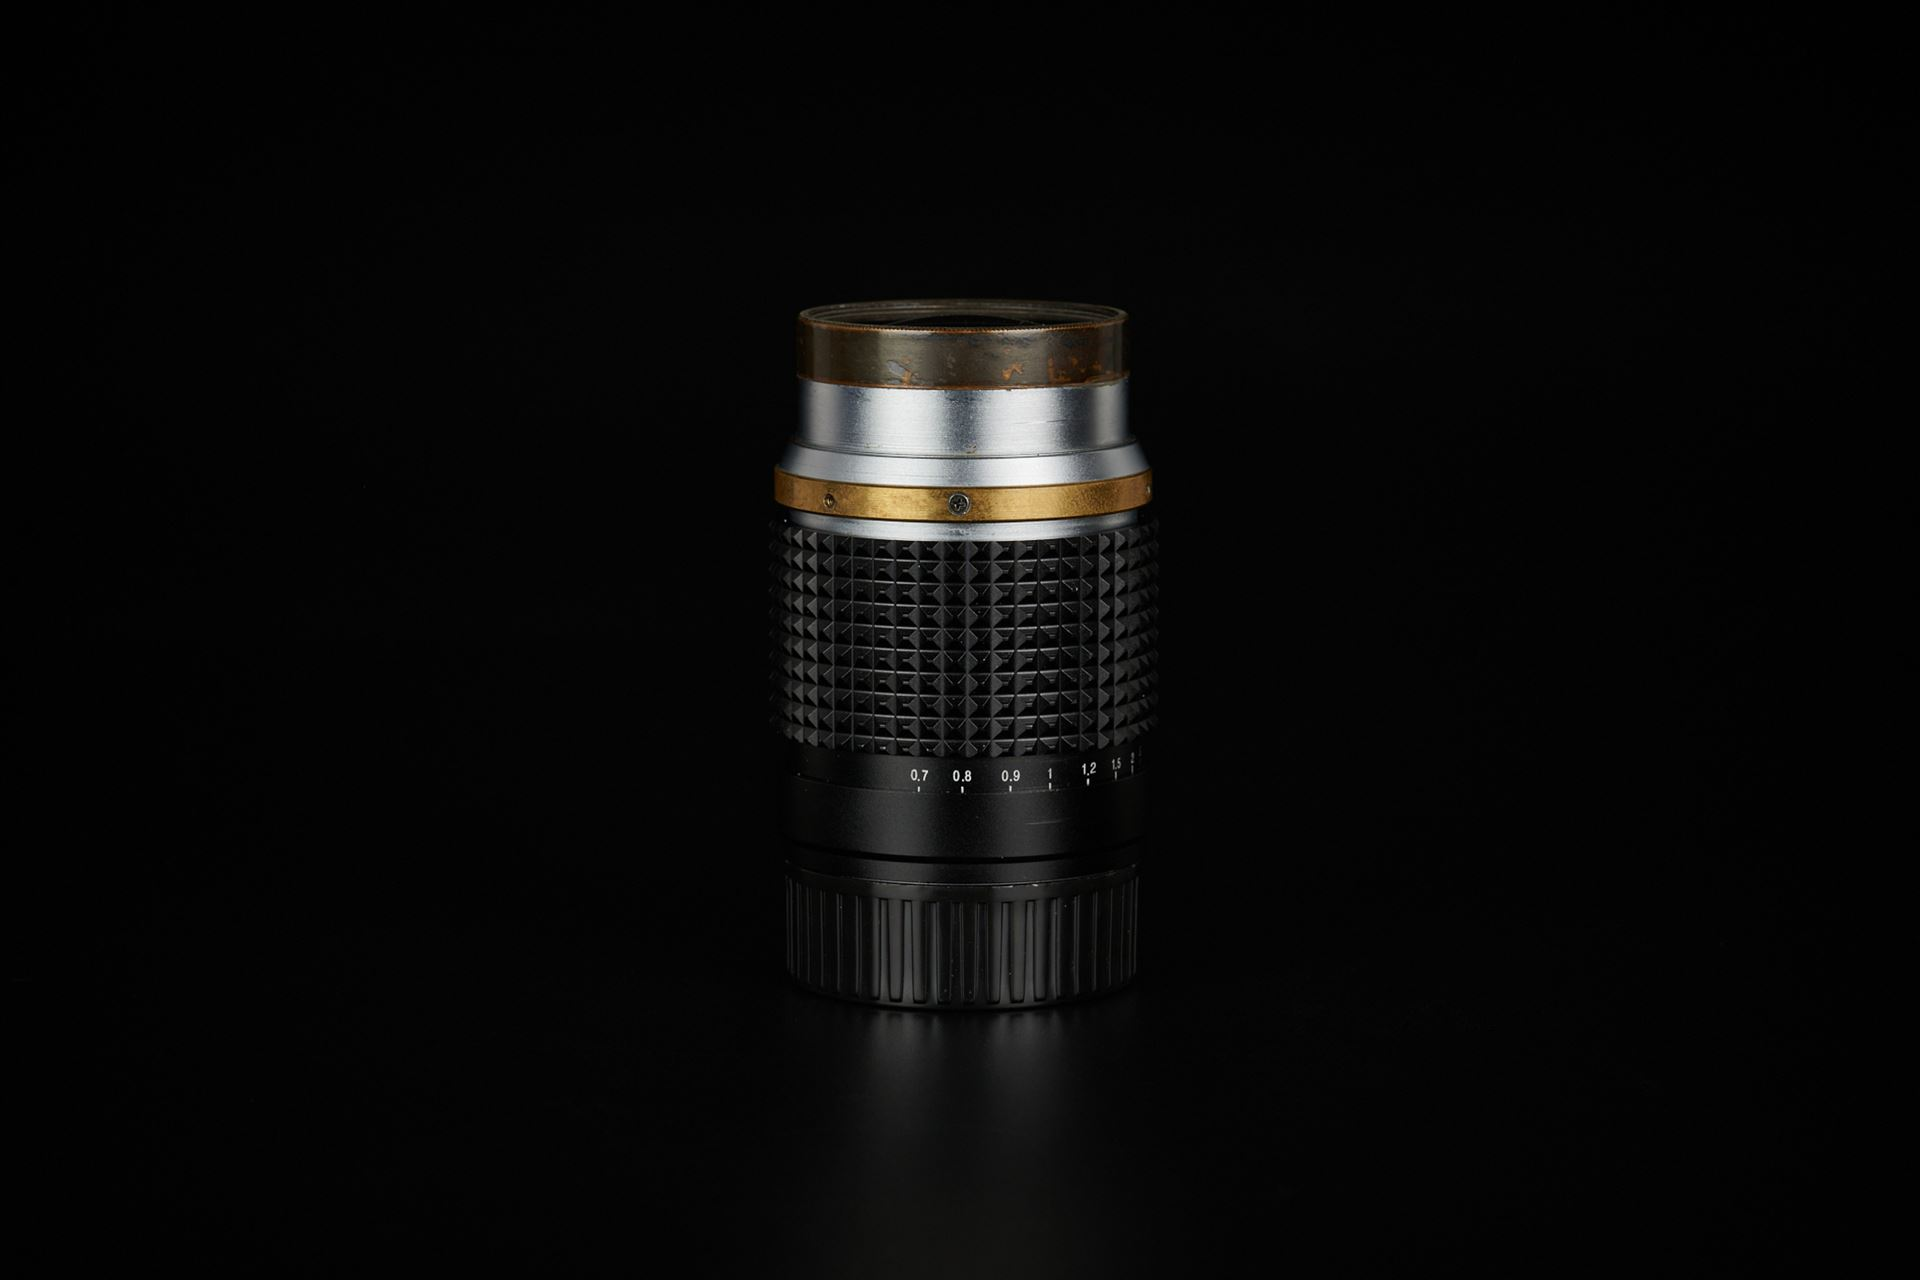 Picture of dallmeyer super-six anastigmat 3inch f/1.9 modified to leica m